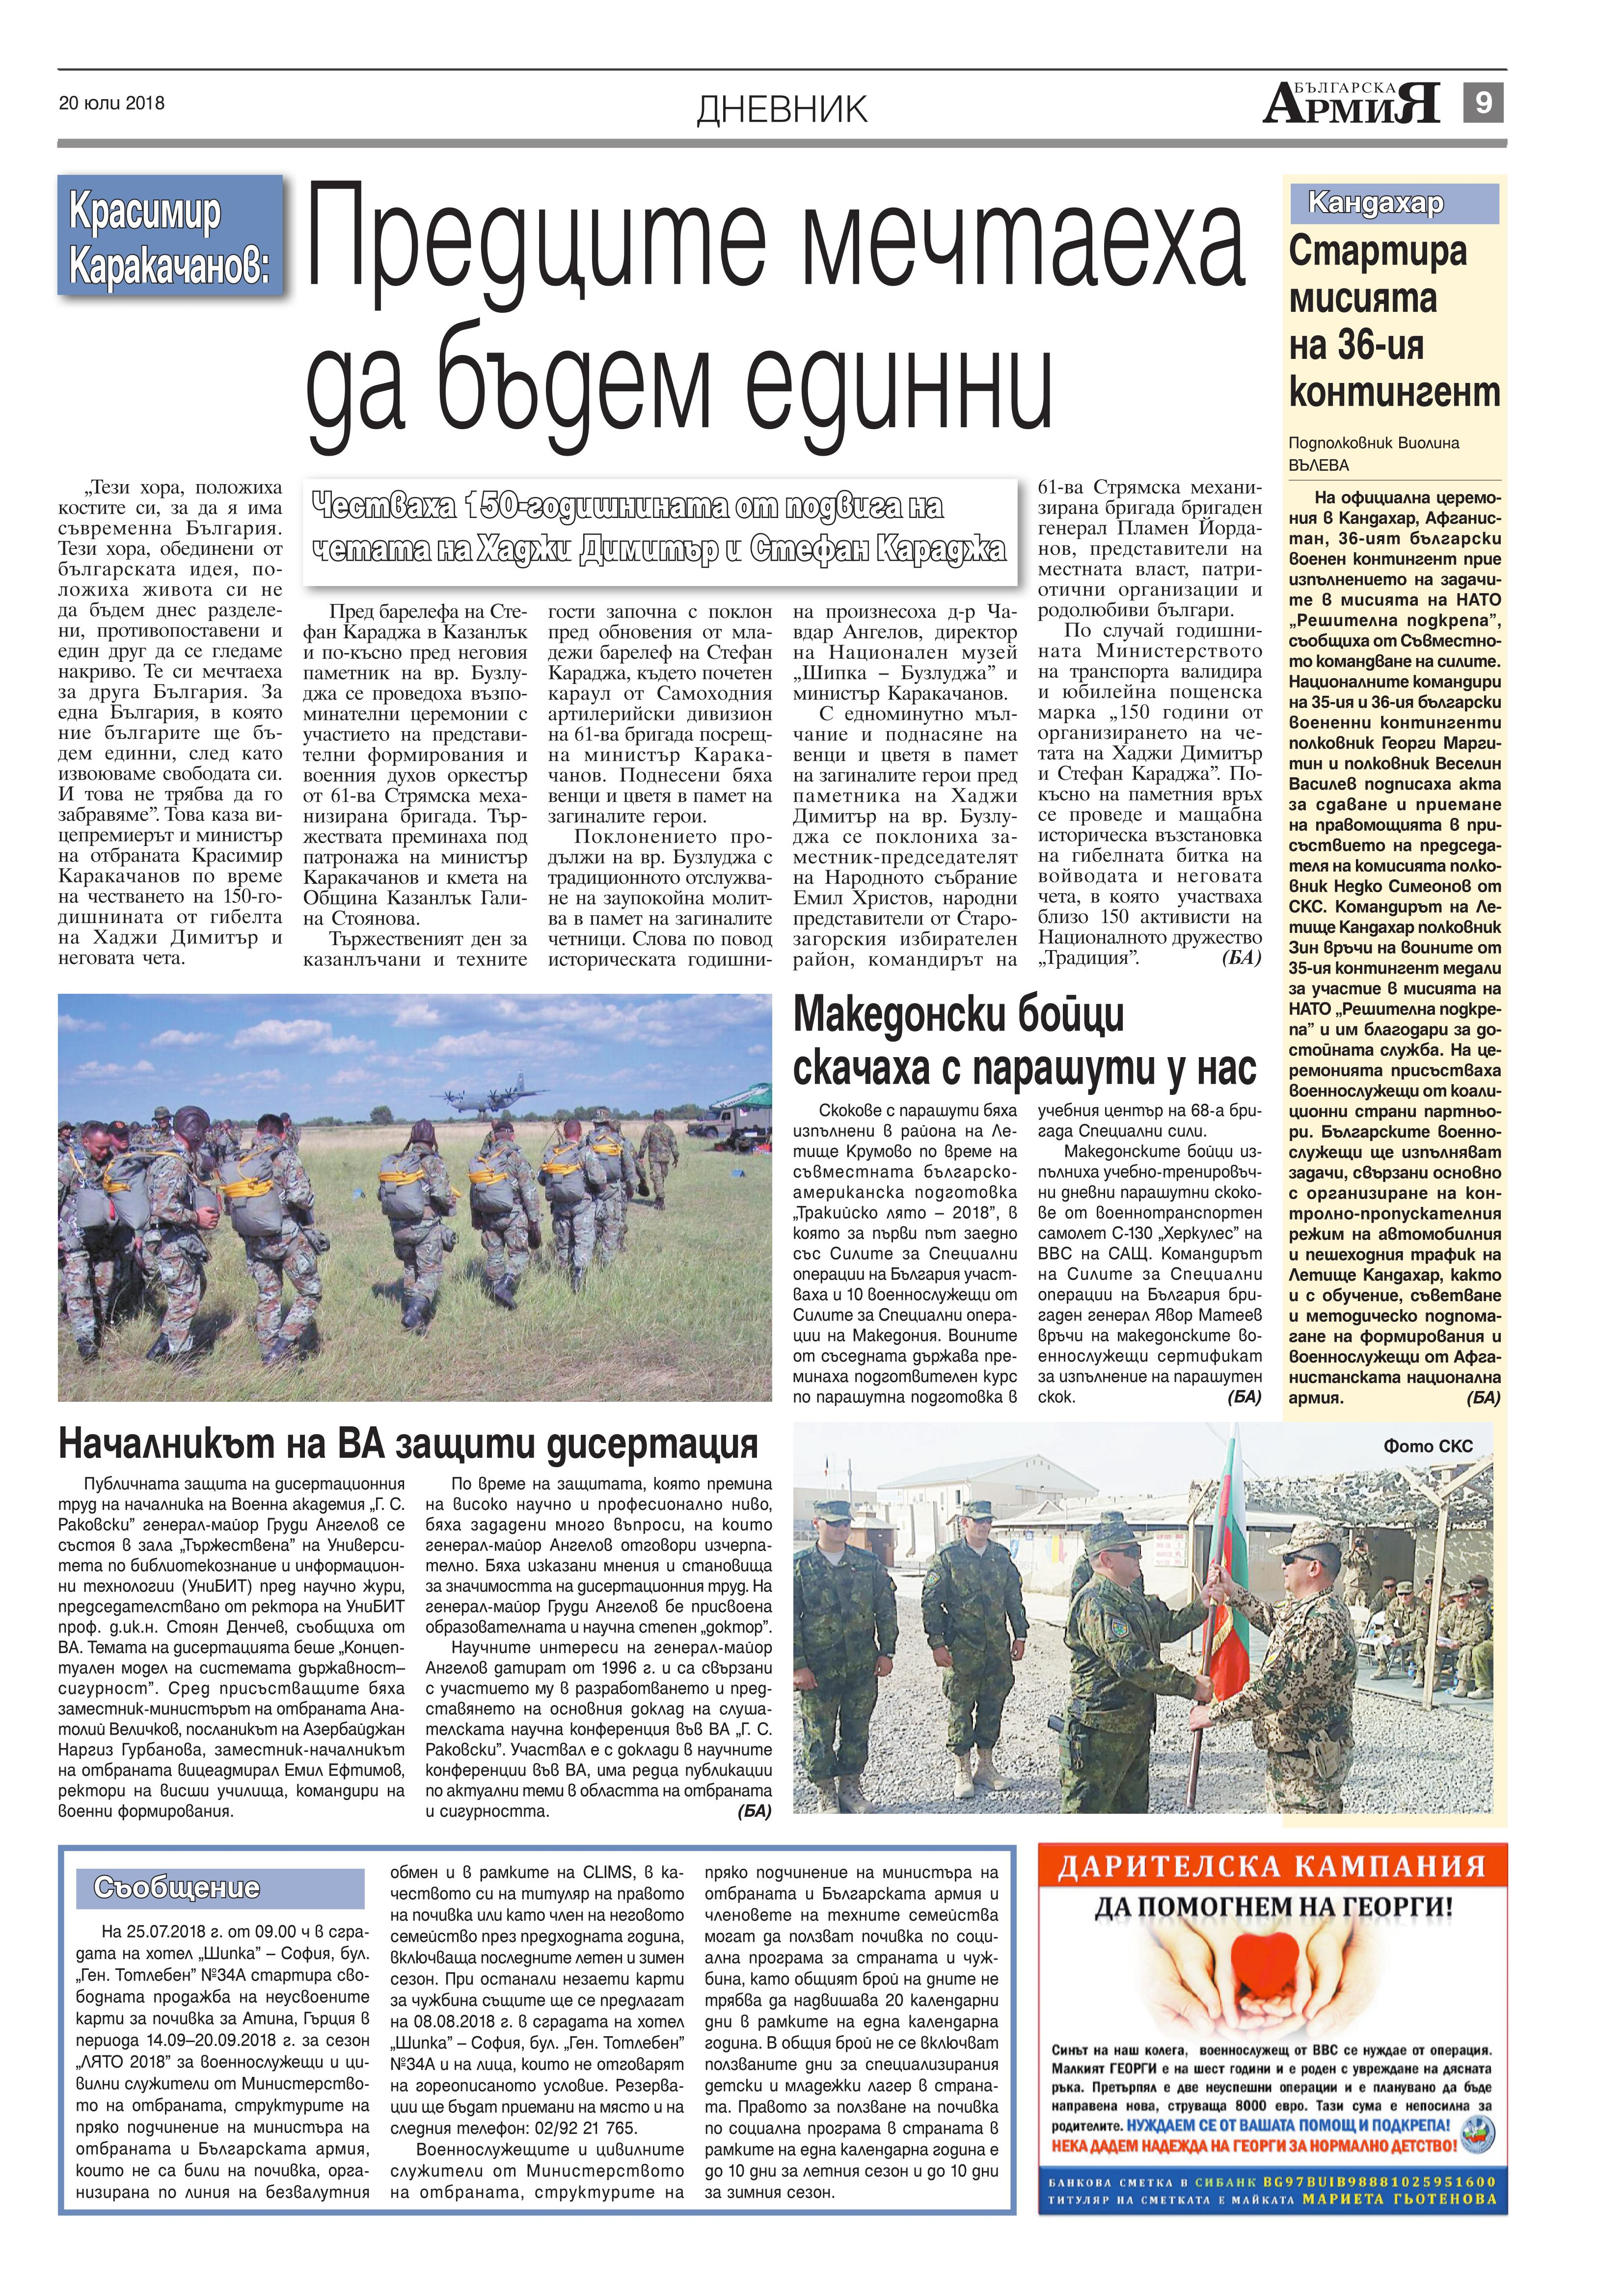 https://armymedia.bg/wp-content/uploads/2015/06/09.page1_-57.jpg